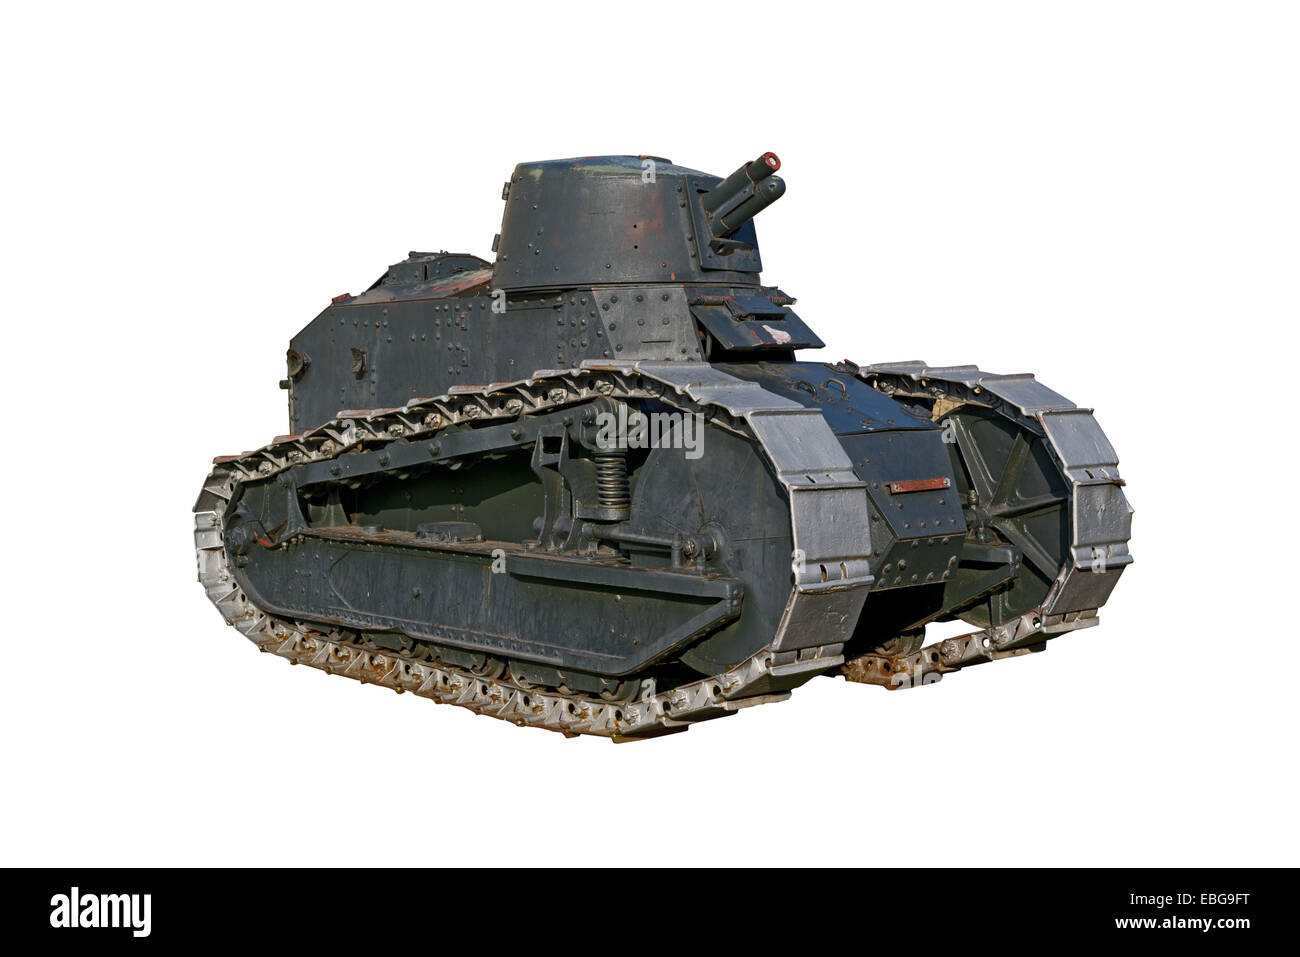 Second World War Light Tank Isolated on White background. - Stock Image